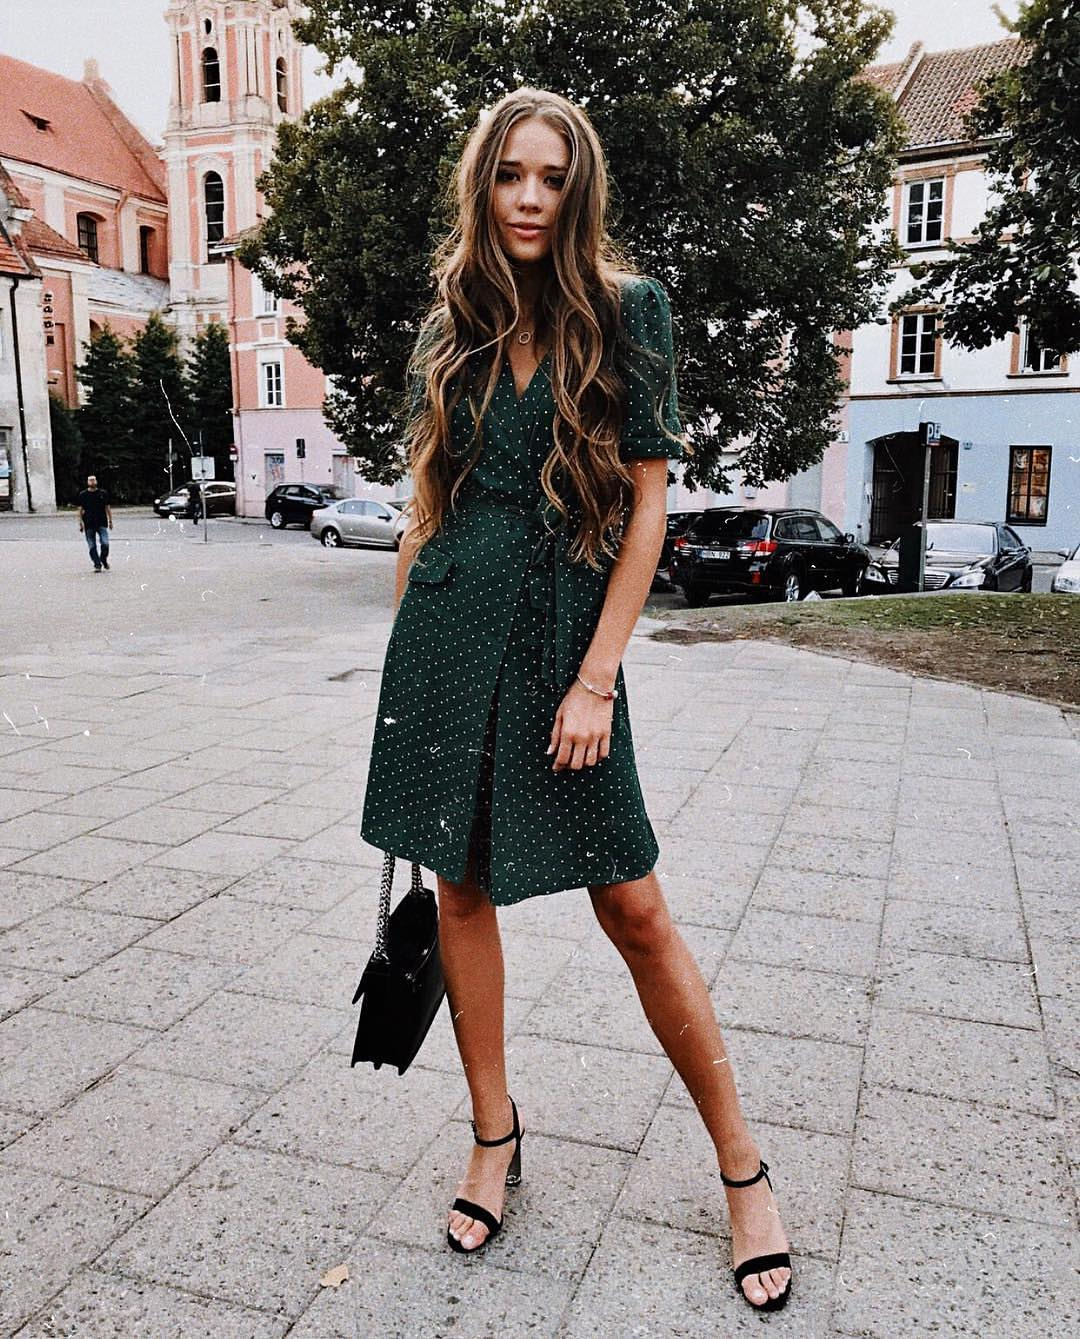 Dark green shirt dress in retro style with white dots for summer 2021